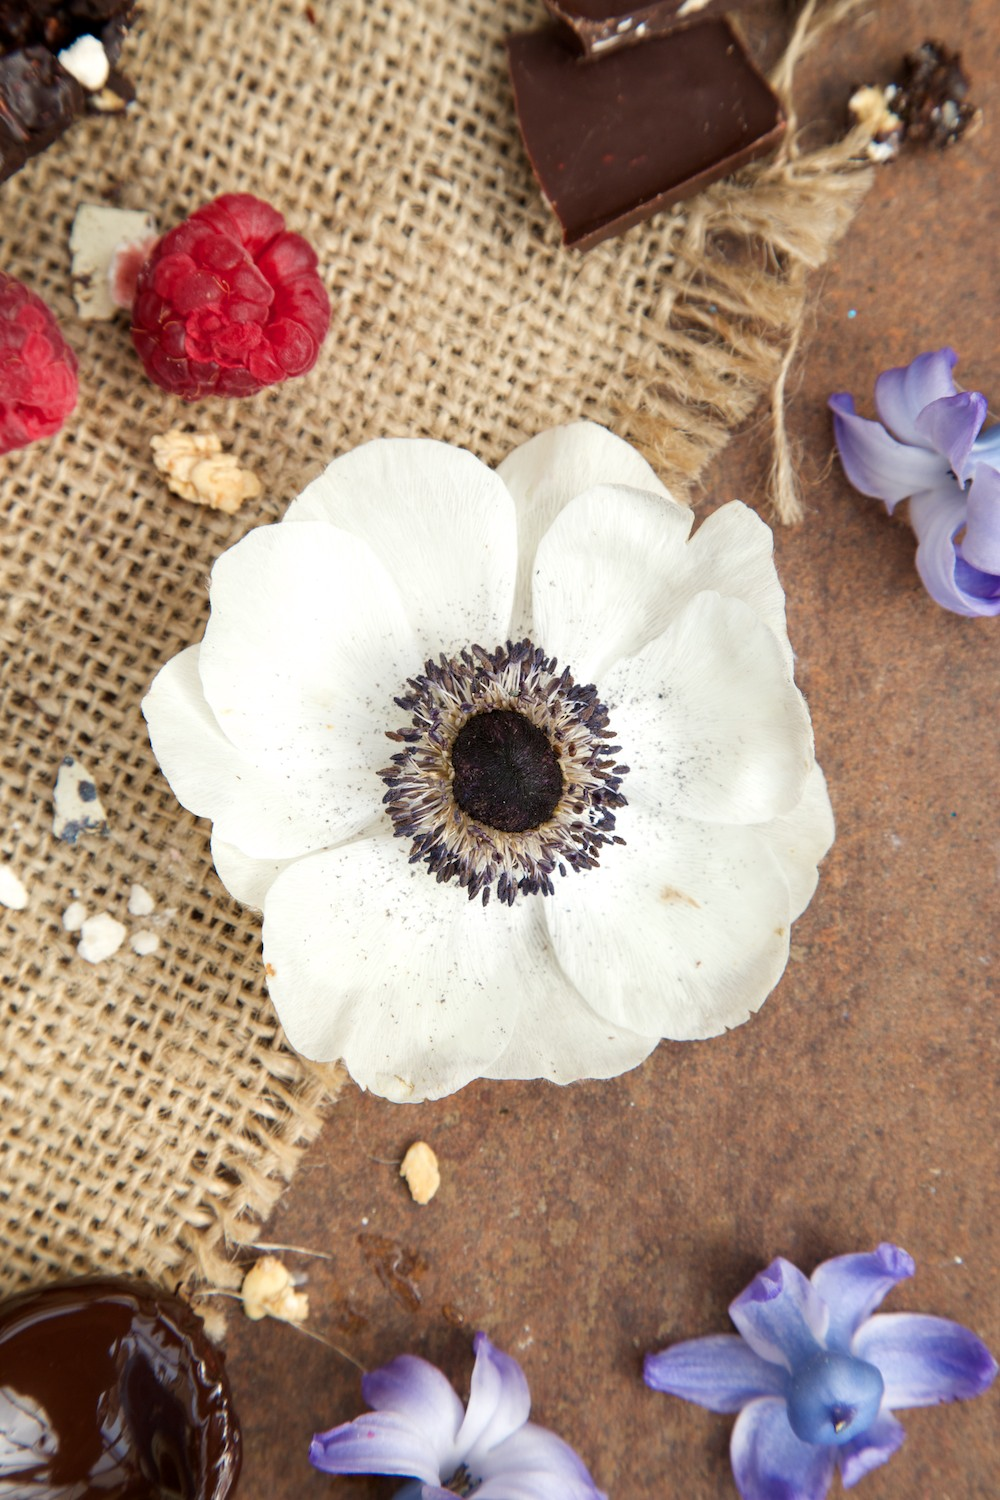 food styling with flowers